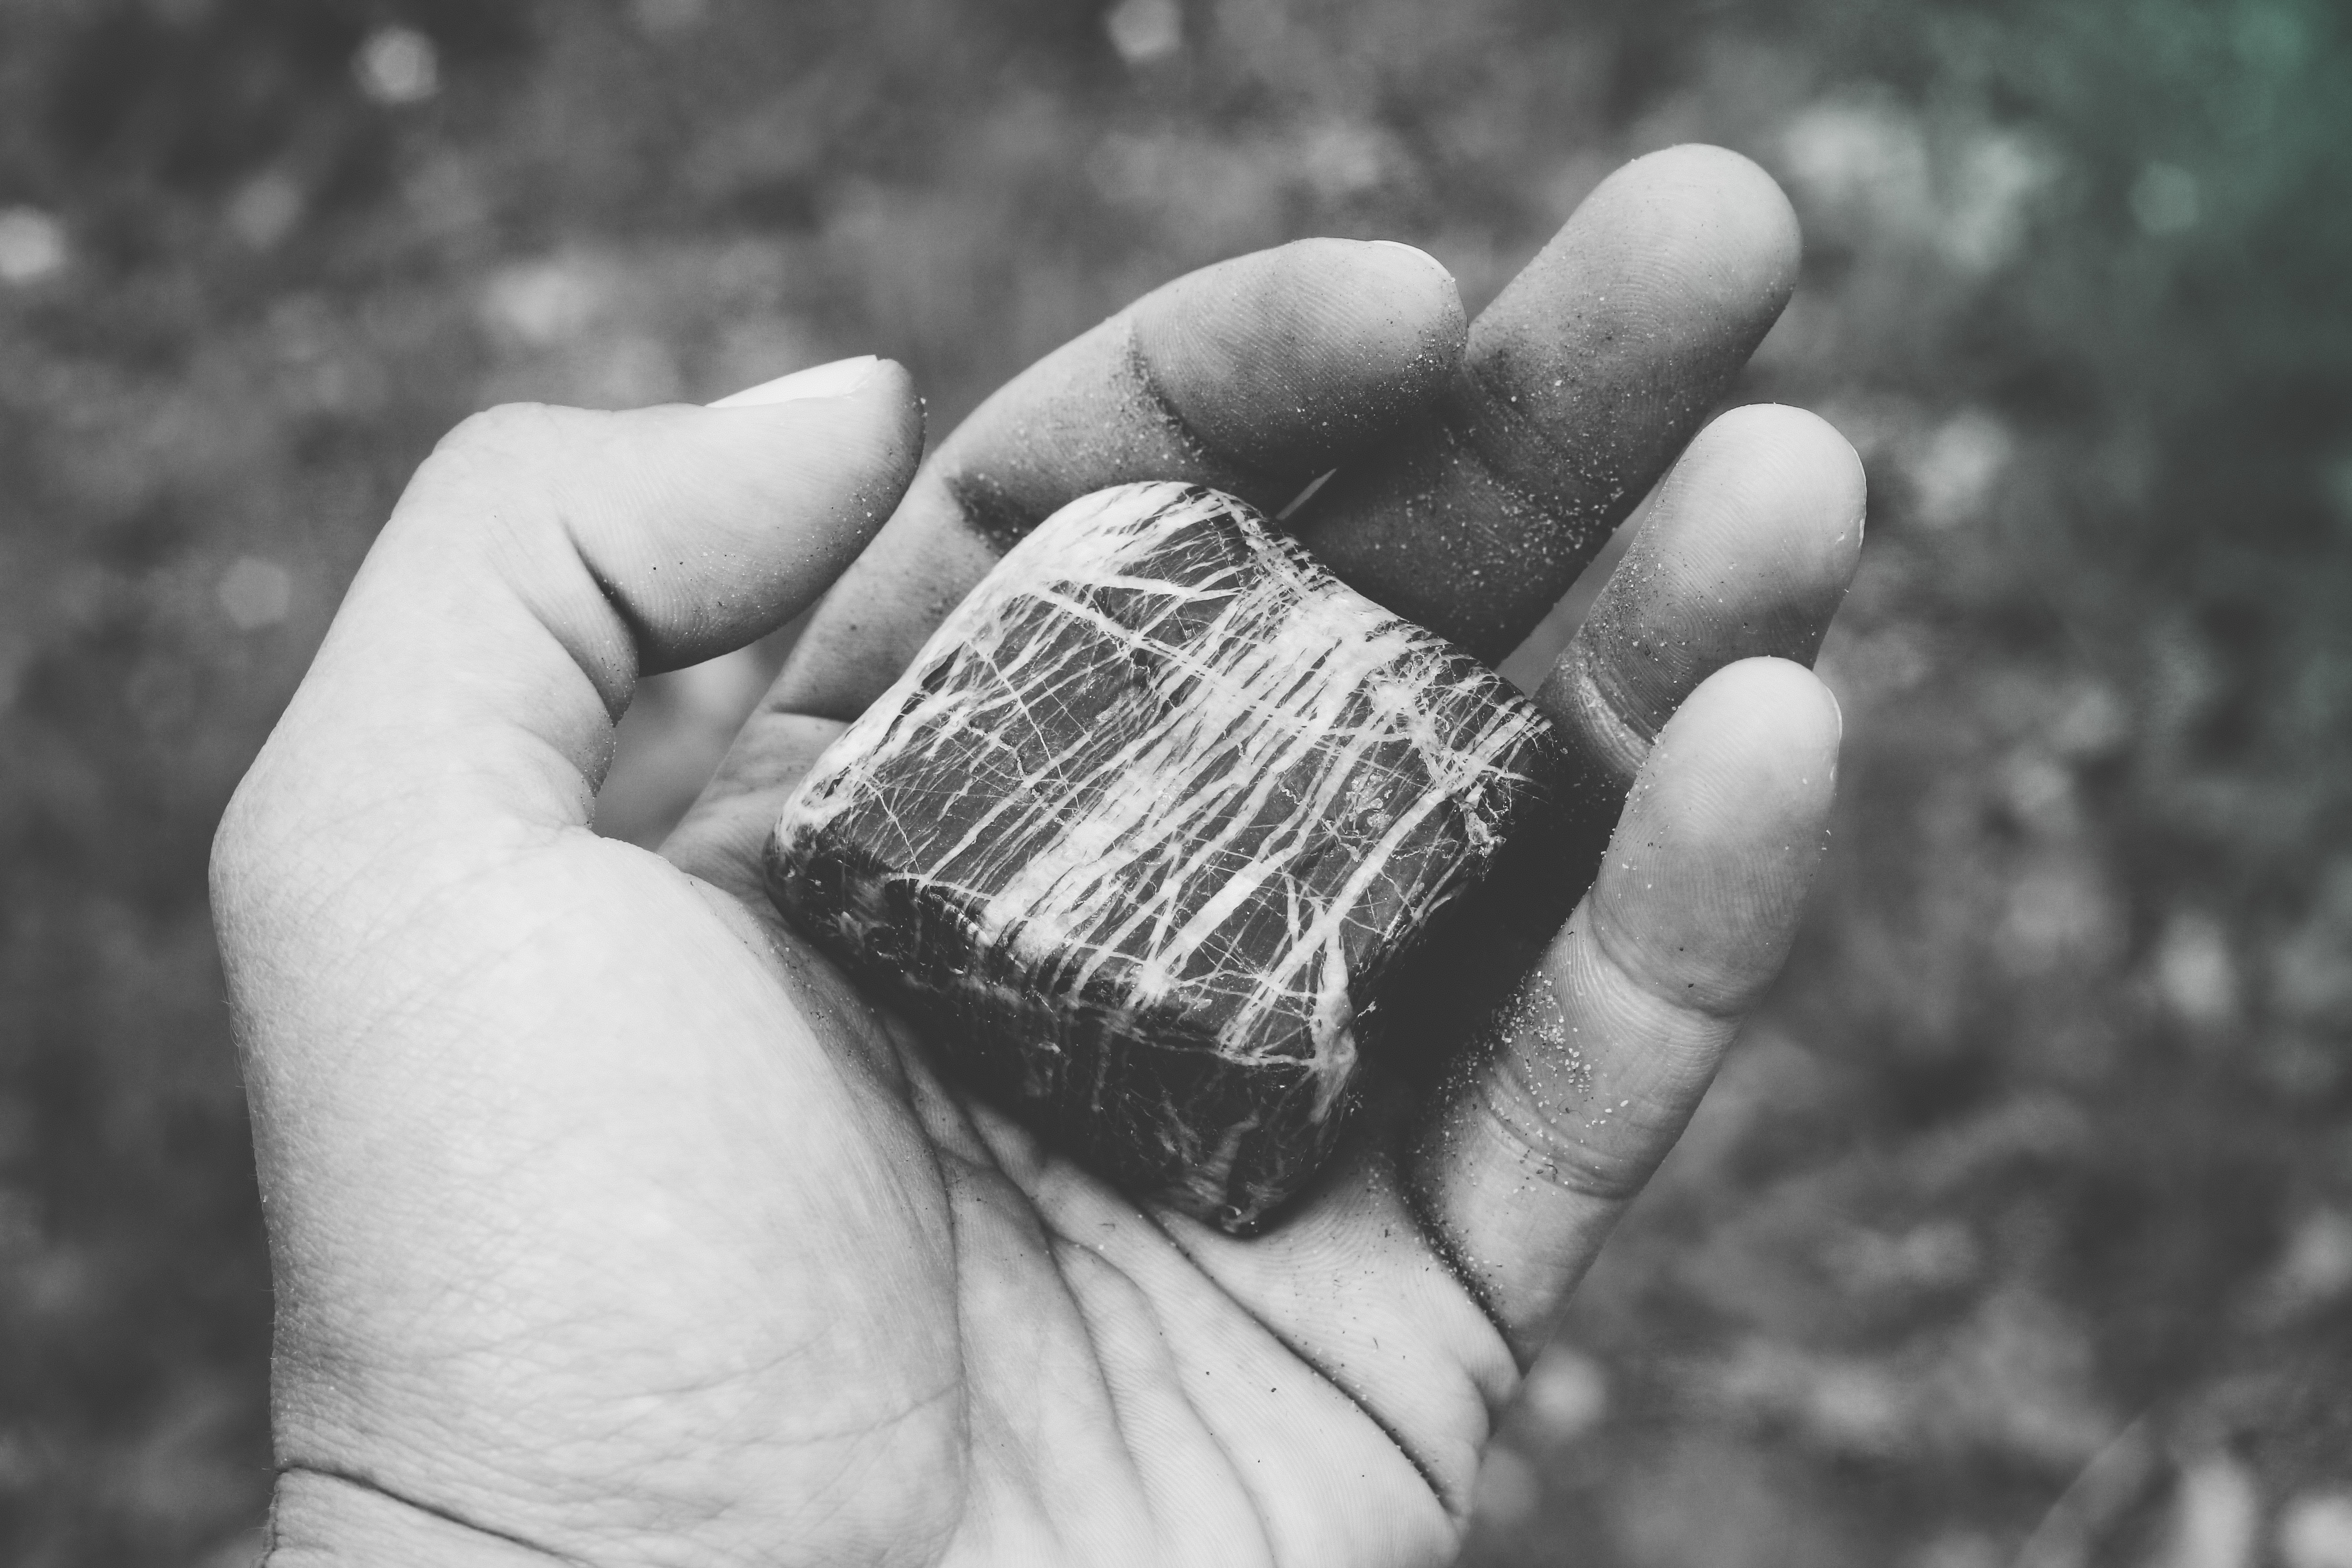 A black-and-white photo of a person's hand holding a cube-shaped rock